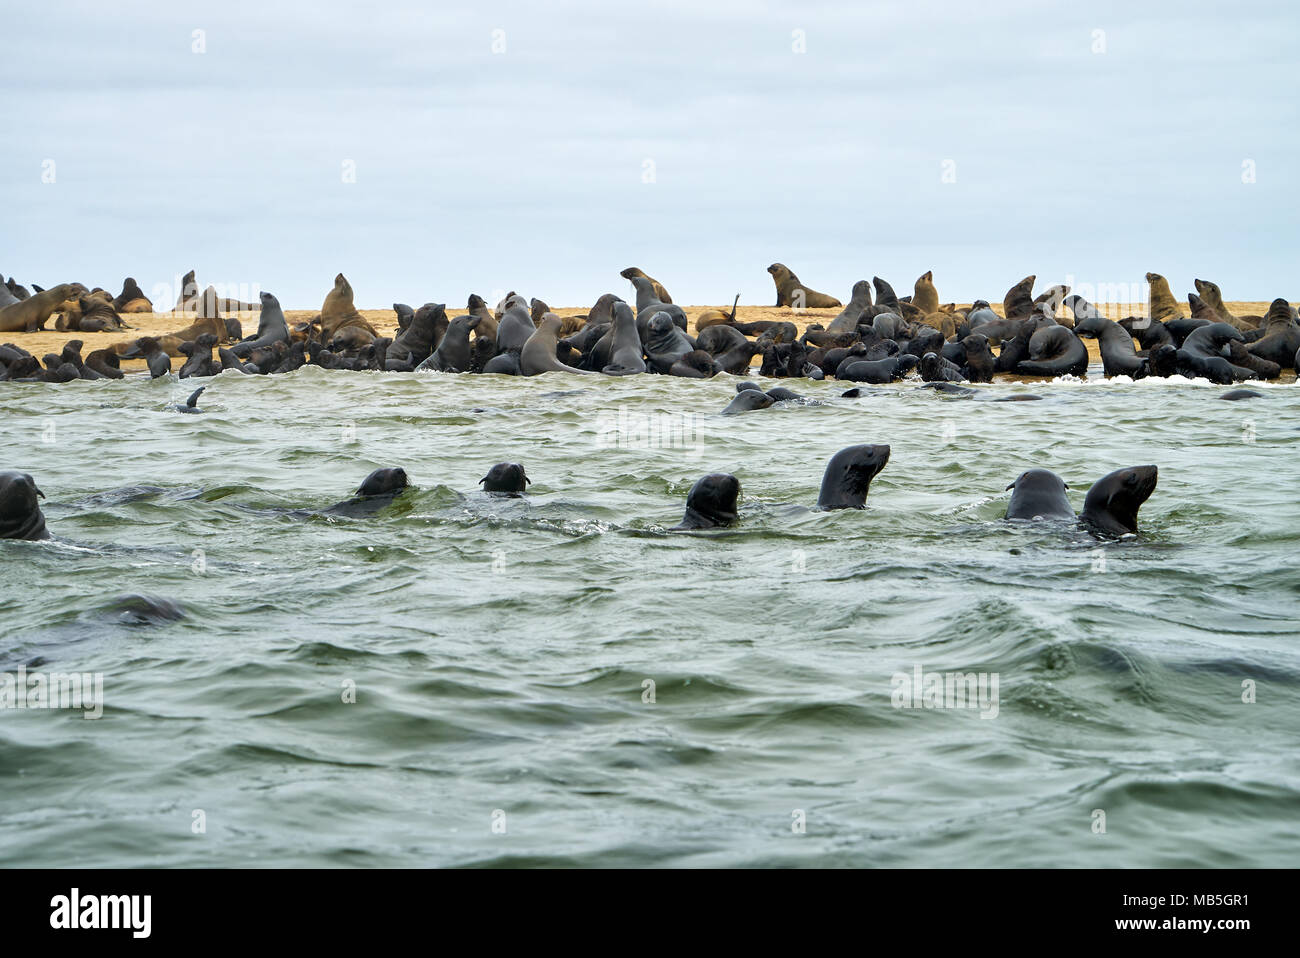 colony of Brown fur seals, Arctocephalus pusillus, Walvis Bay, Namibia, Africa - Stock Image